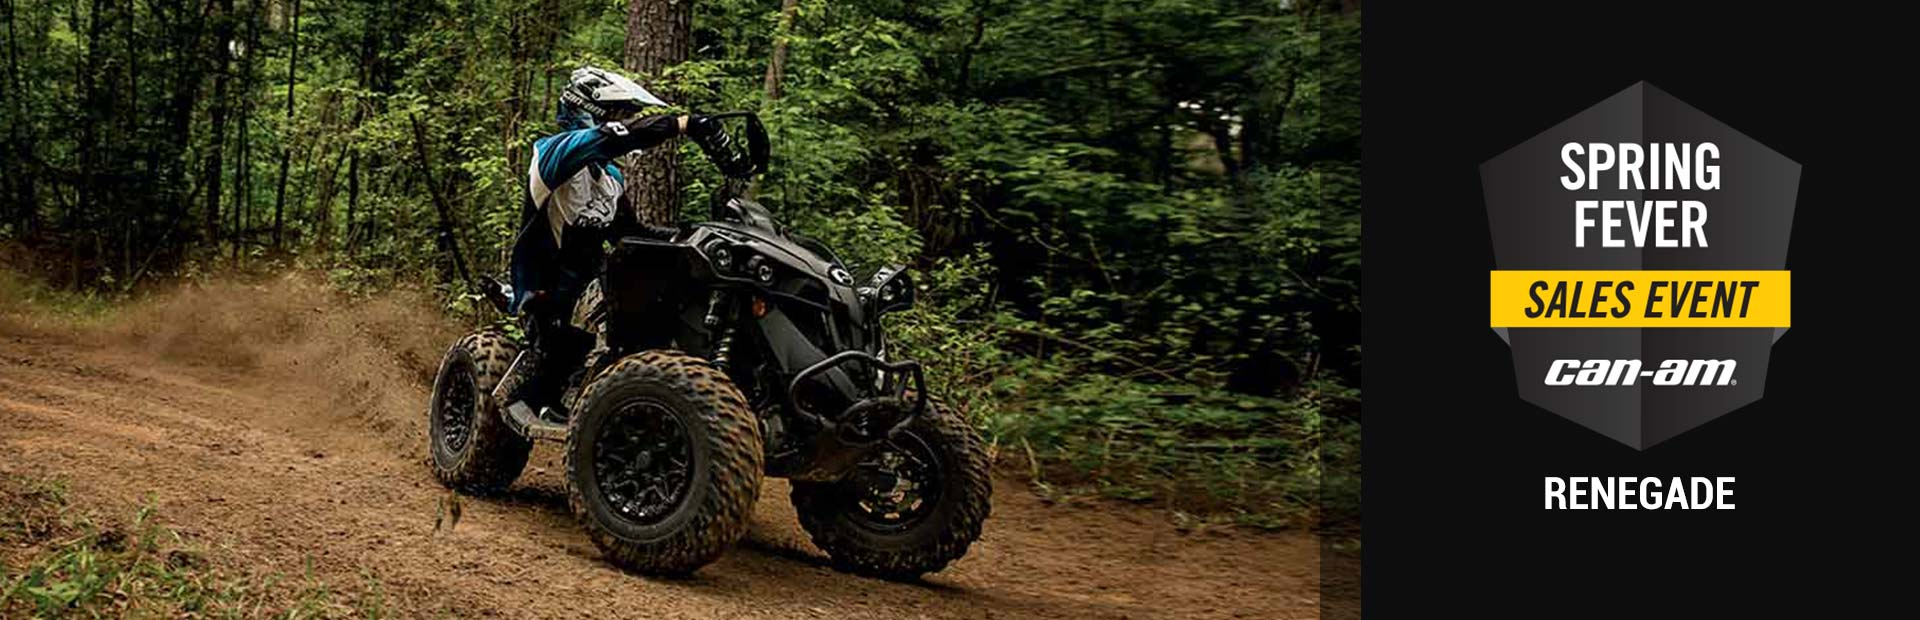 Can-Am: Spring Fever Sales Event (Renegade)